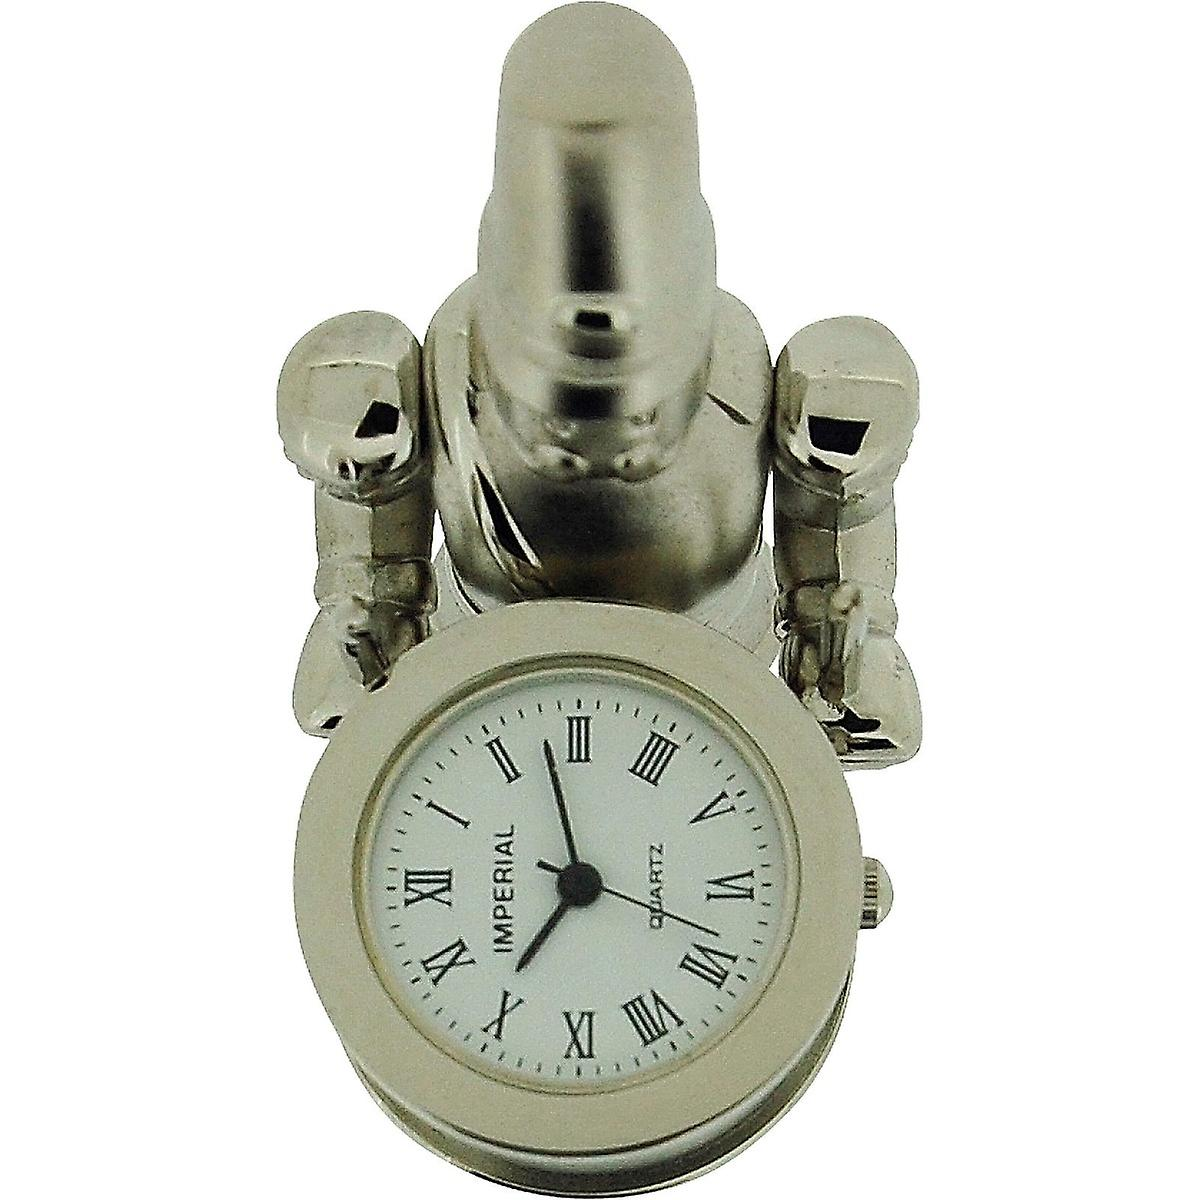 Collectors Novelty Miniature Imp1041s Soldier Clock Drum Chrome Plated Toy With oedrCxB